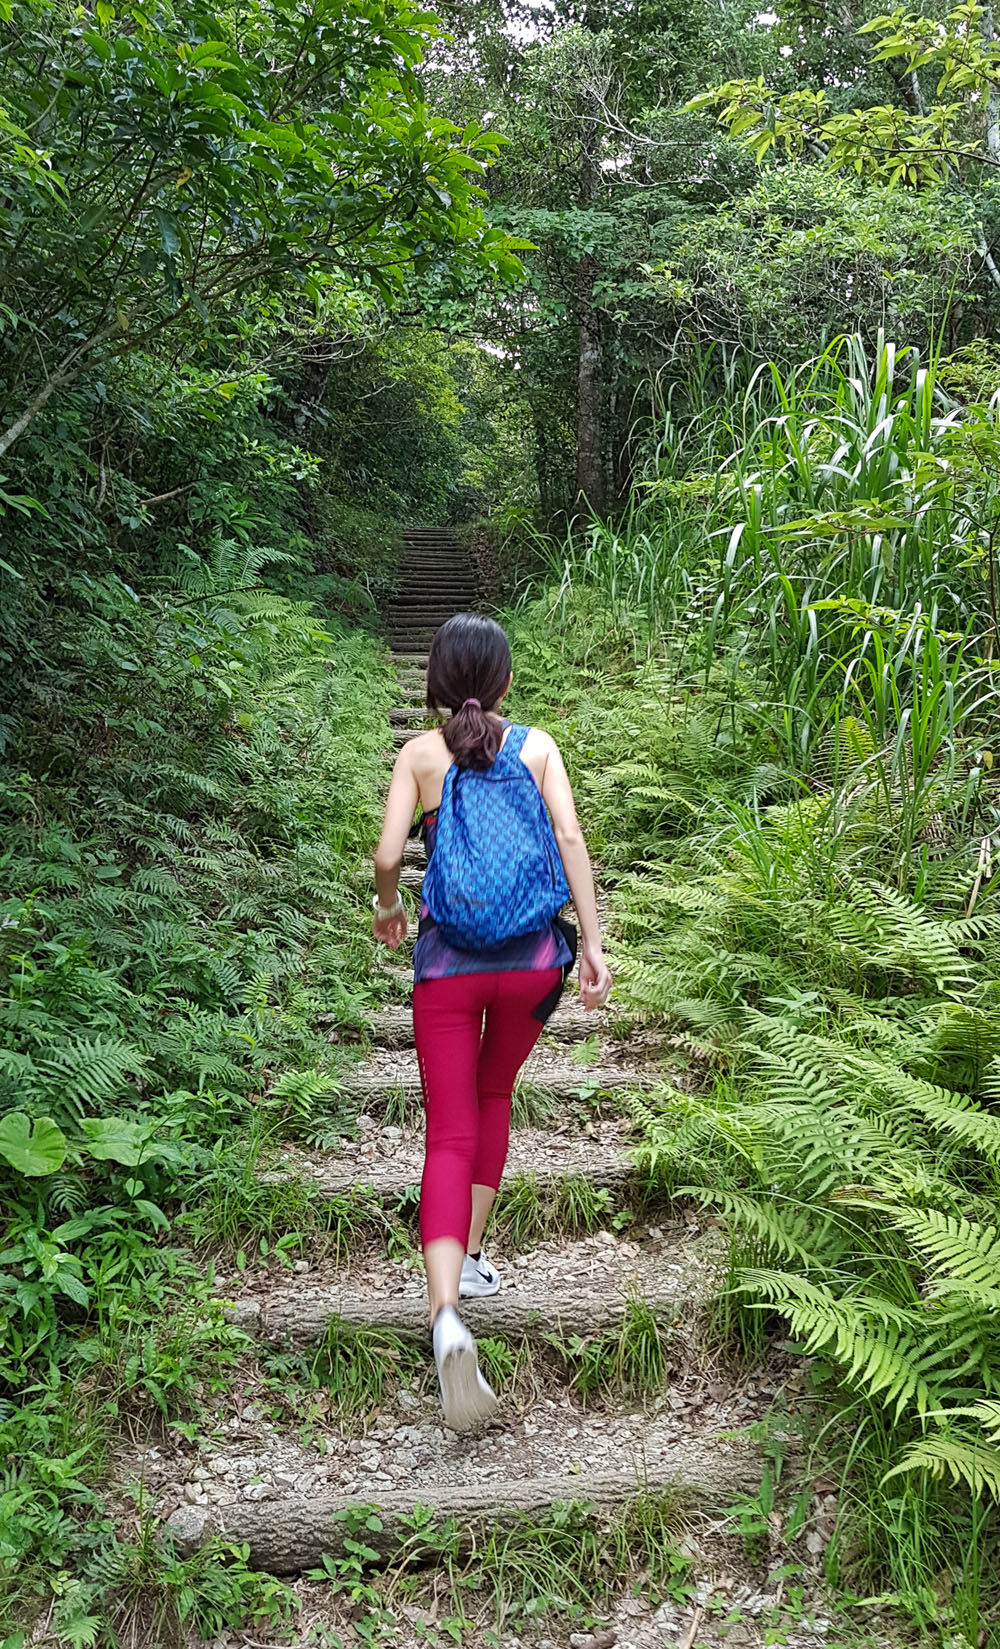 Hiking in Okinawa